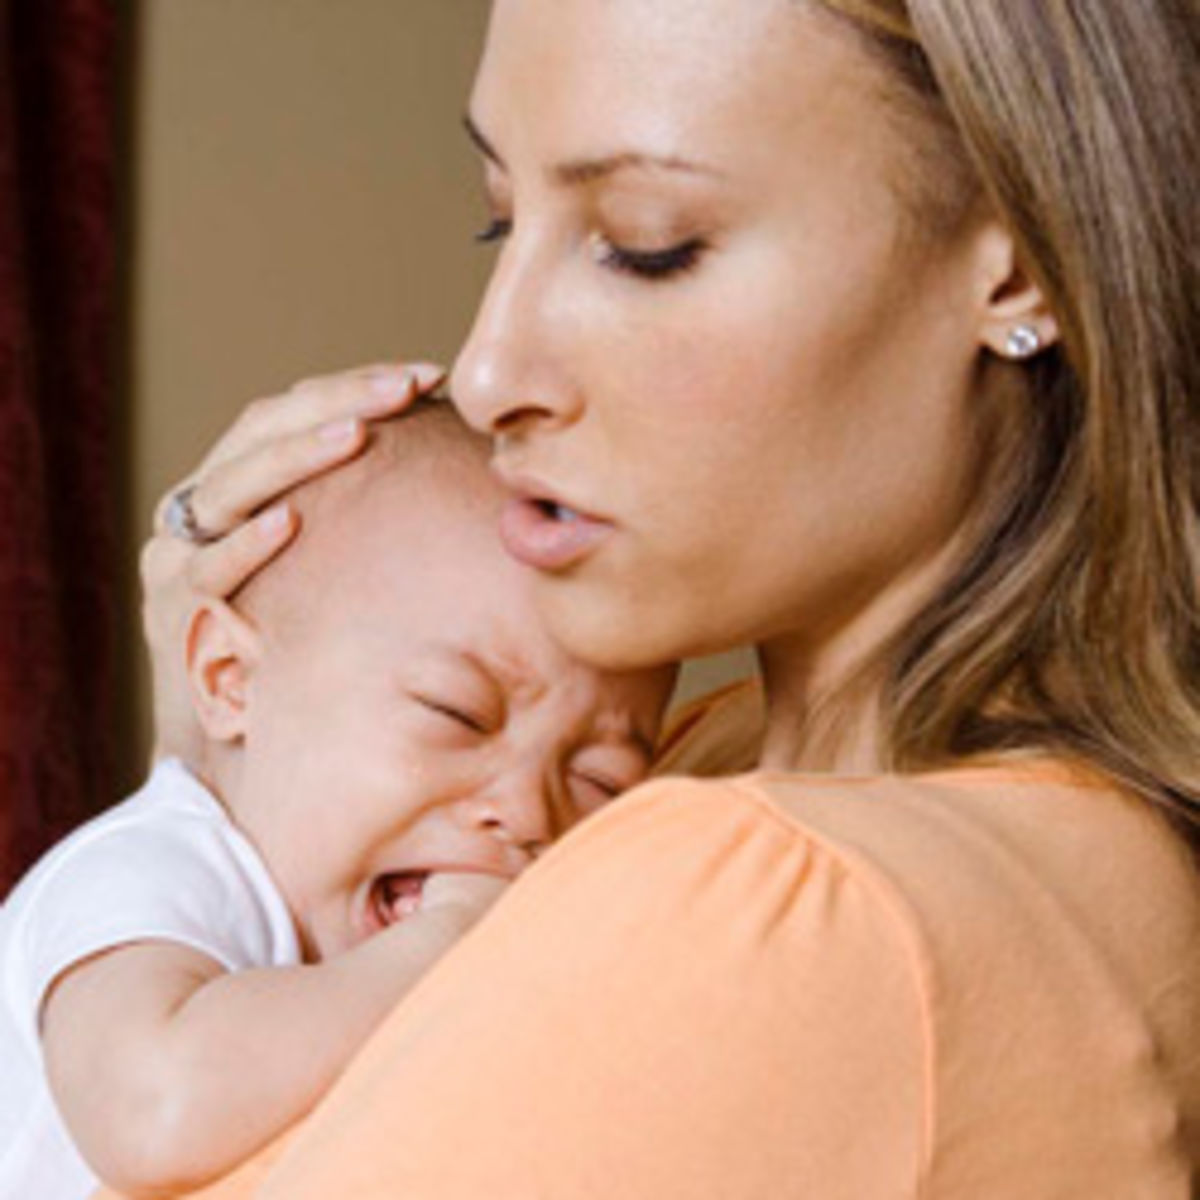 The Neuroscience of Calming a Baby | Psychology Today